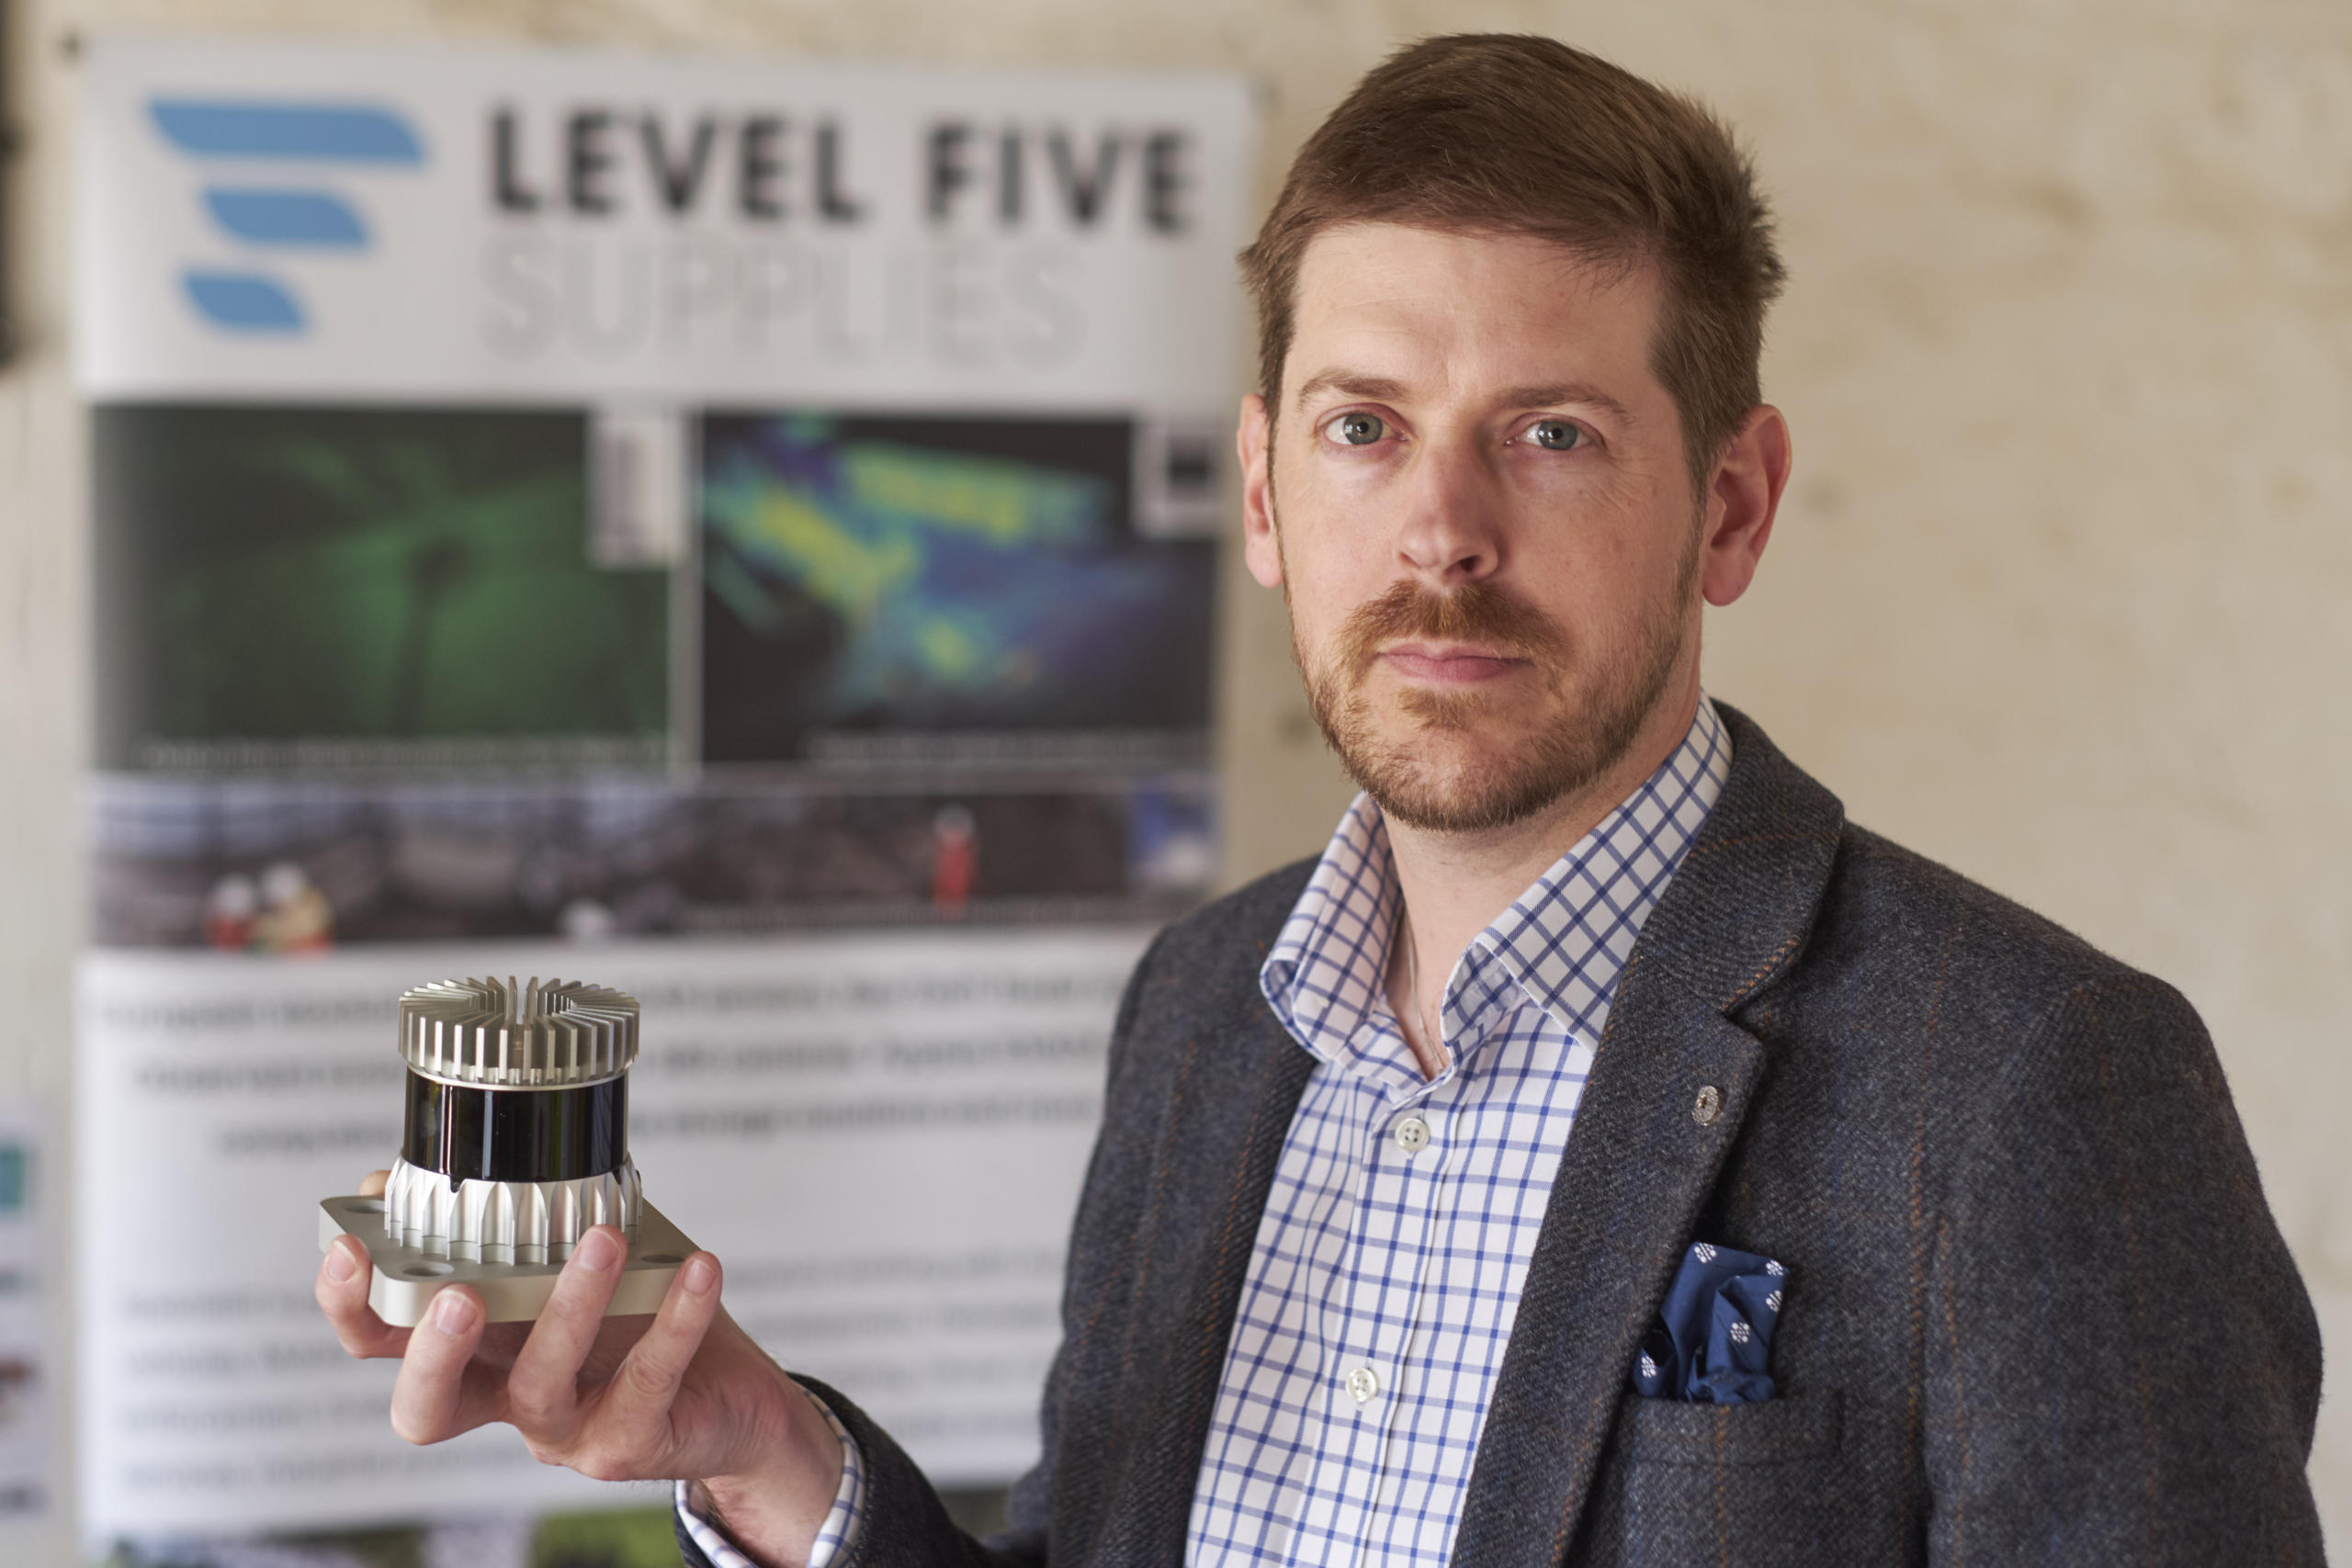 Alex Lawrence Berkeley CEO Level Five Supplies holding an Ouster LiDAR unit